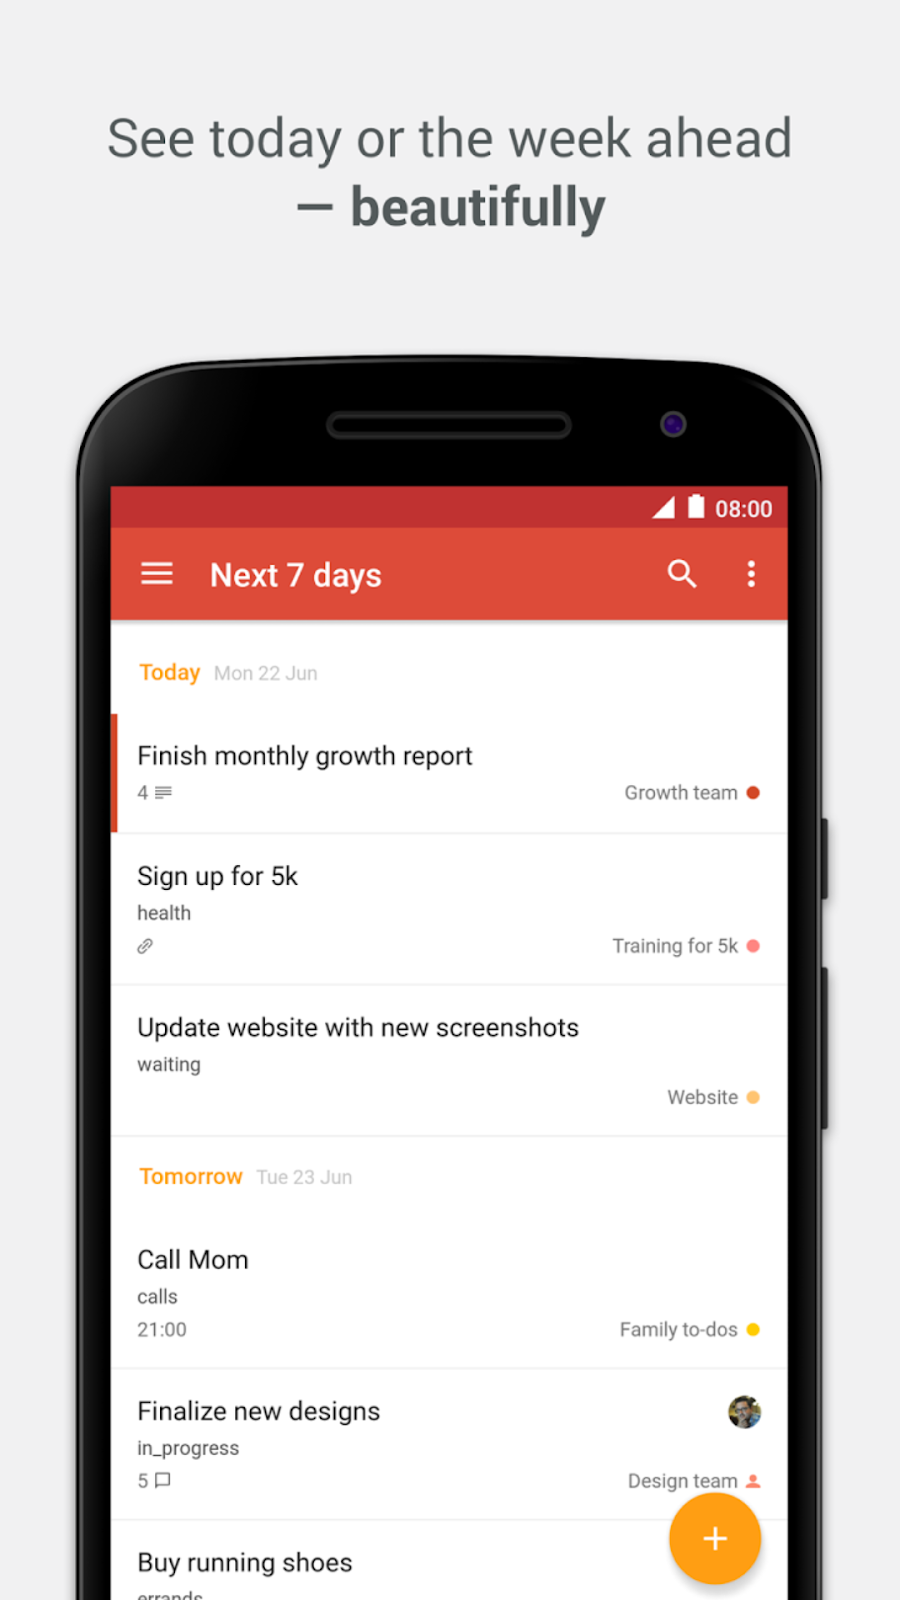 Apps For Daily Schedule, Important Apps, Regular Apps, Google Keep, Todoist: To-Do List, Todoist, Any.do, To-do List, Loop: Habit Tracker, Loop, Haptik Personal Assistant, Reminders, Task reminder app